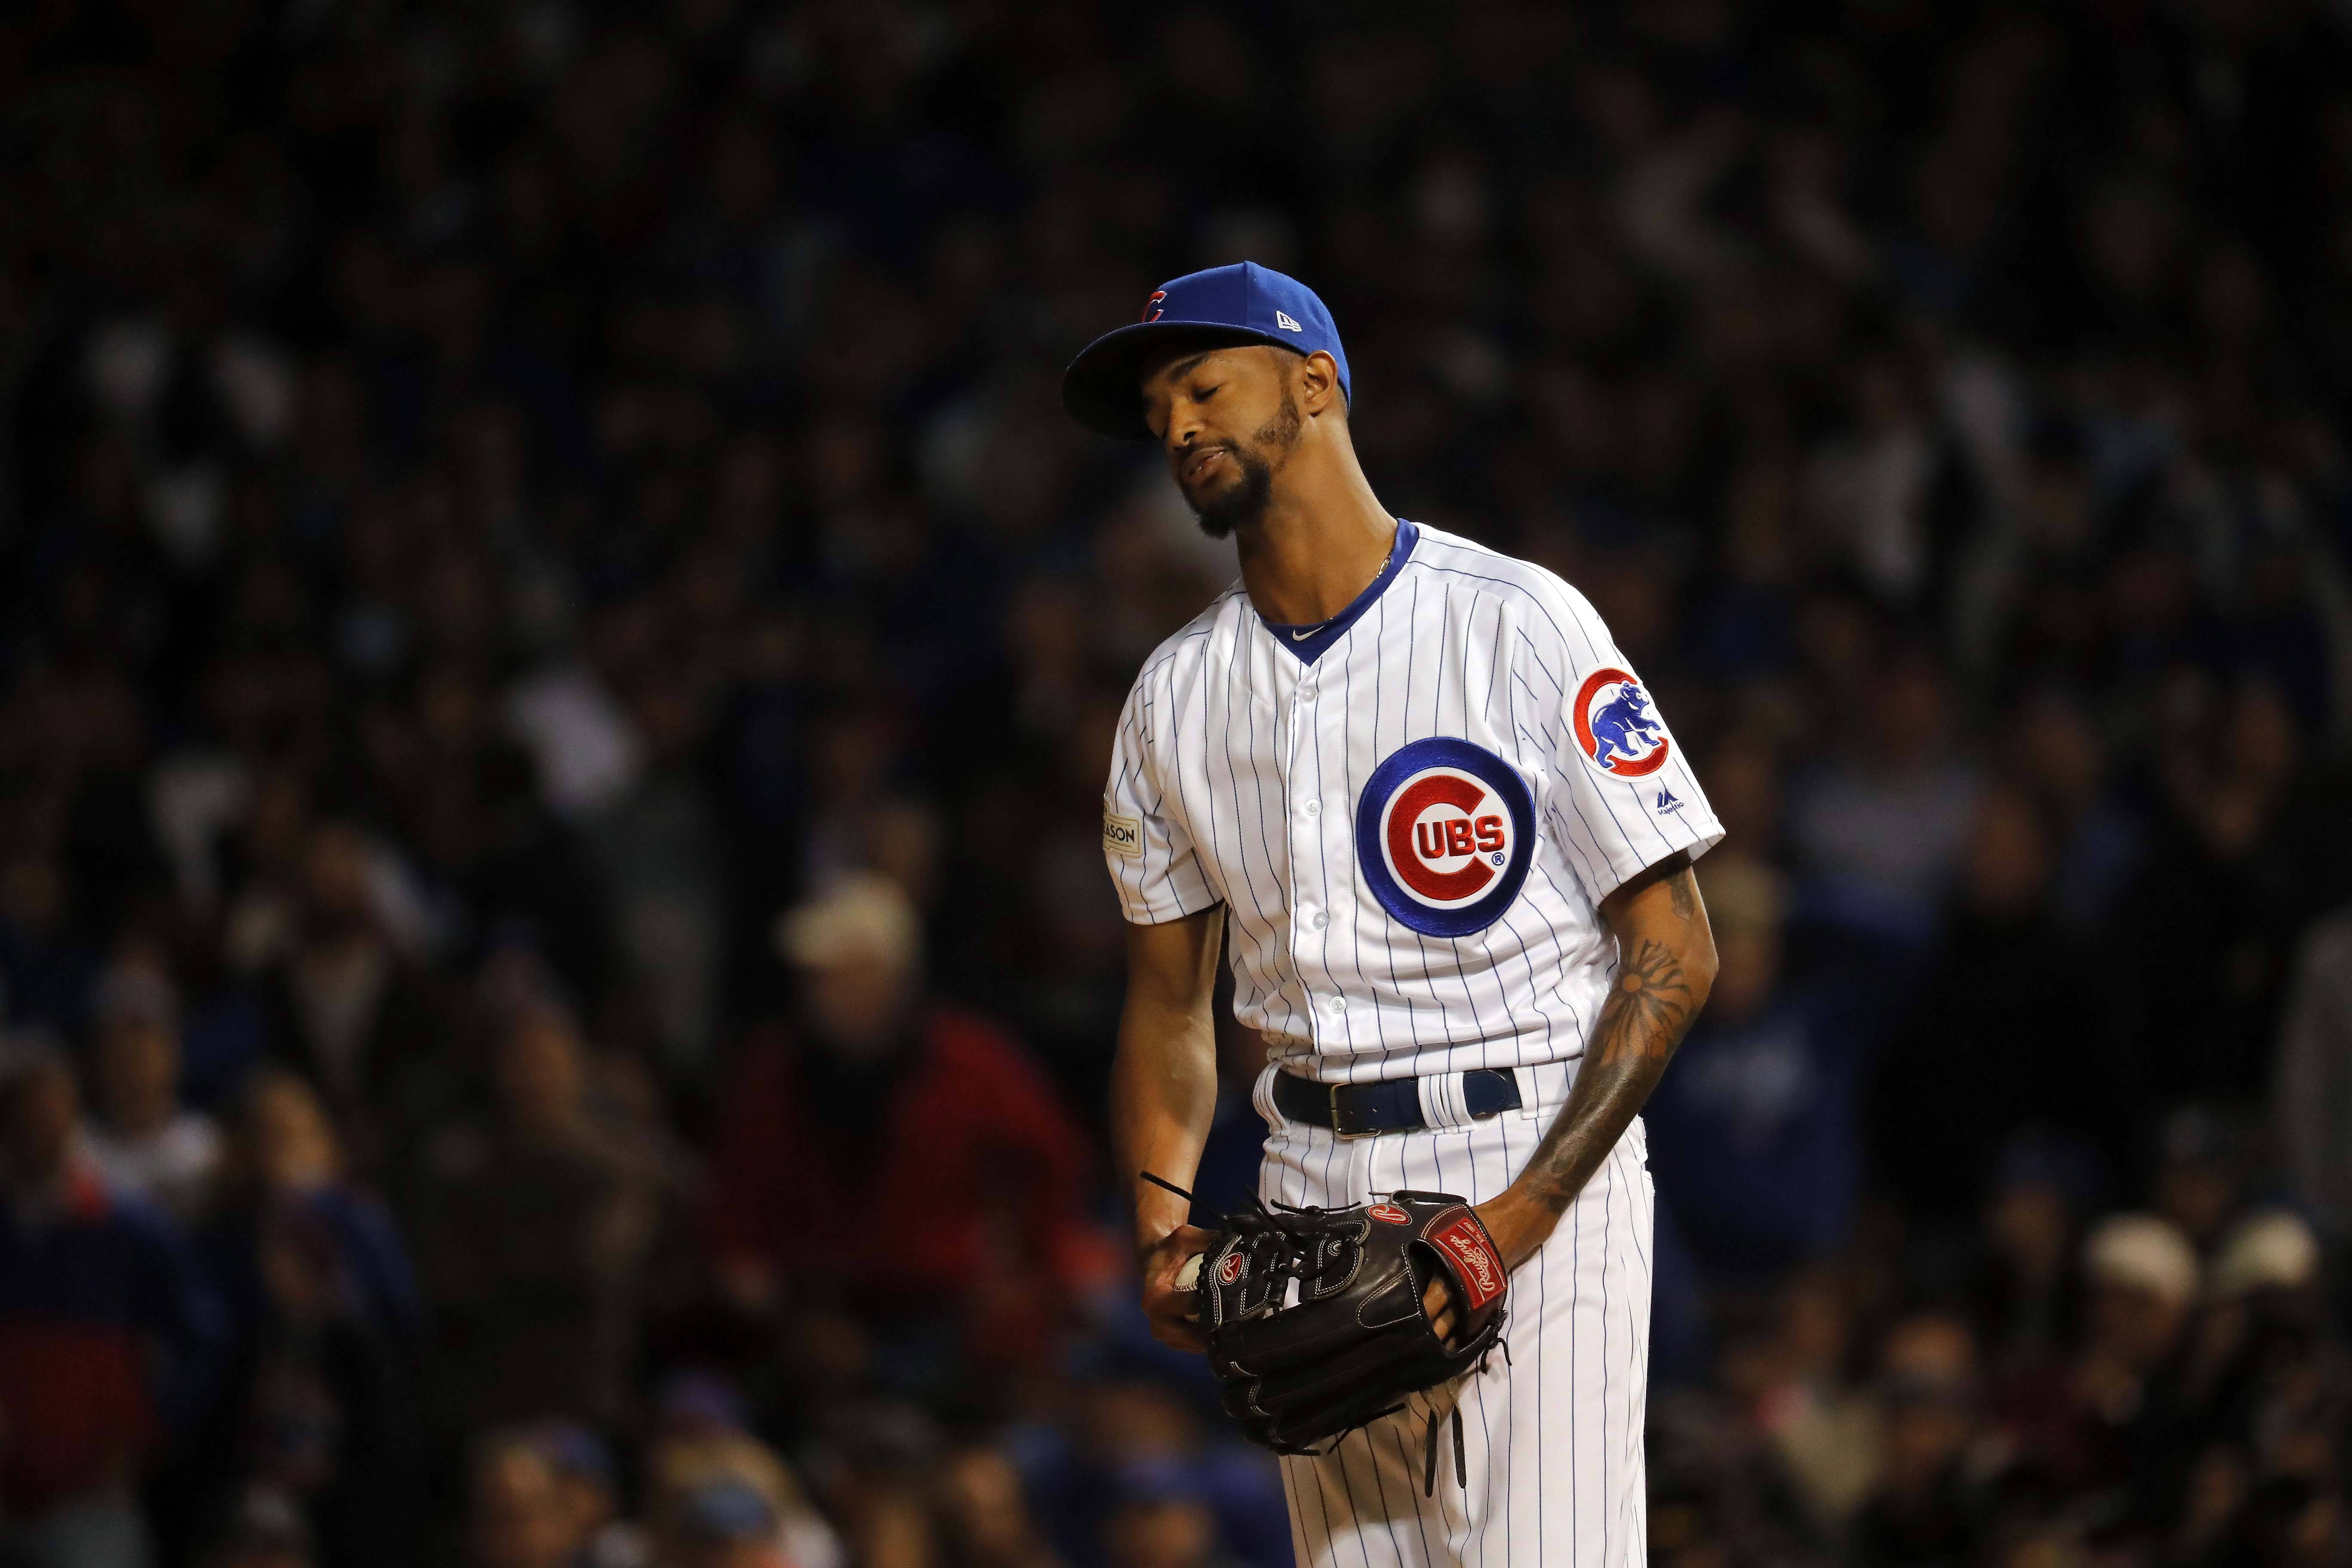 Chicago Cubs relief pitcher Carl Edwards Jr. (6) reacts after walking in a run in sixth inning during Game 3 of the National League championship series, Oct, 17 2017, at Wrigley Field in Chicago.